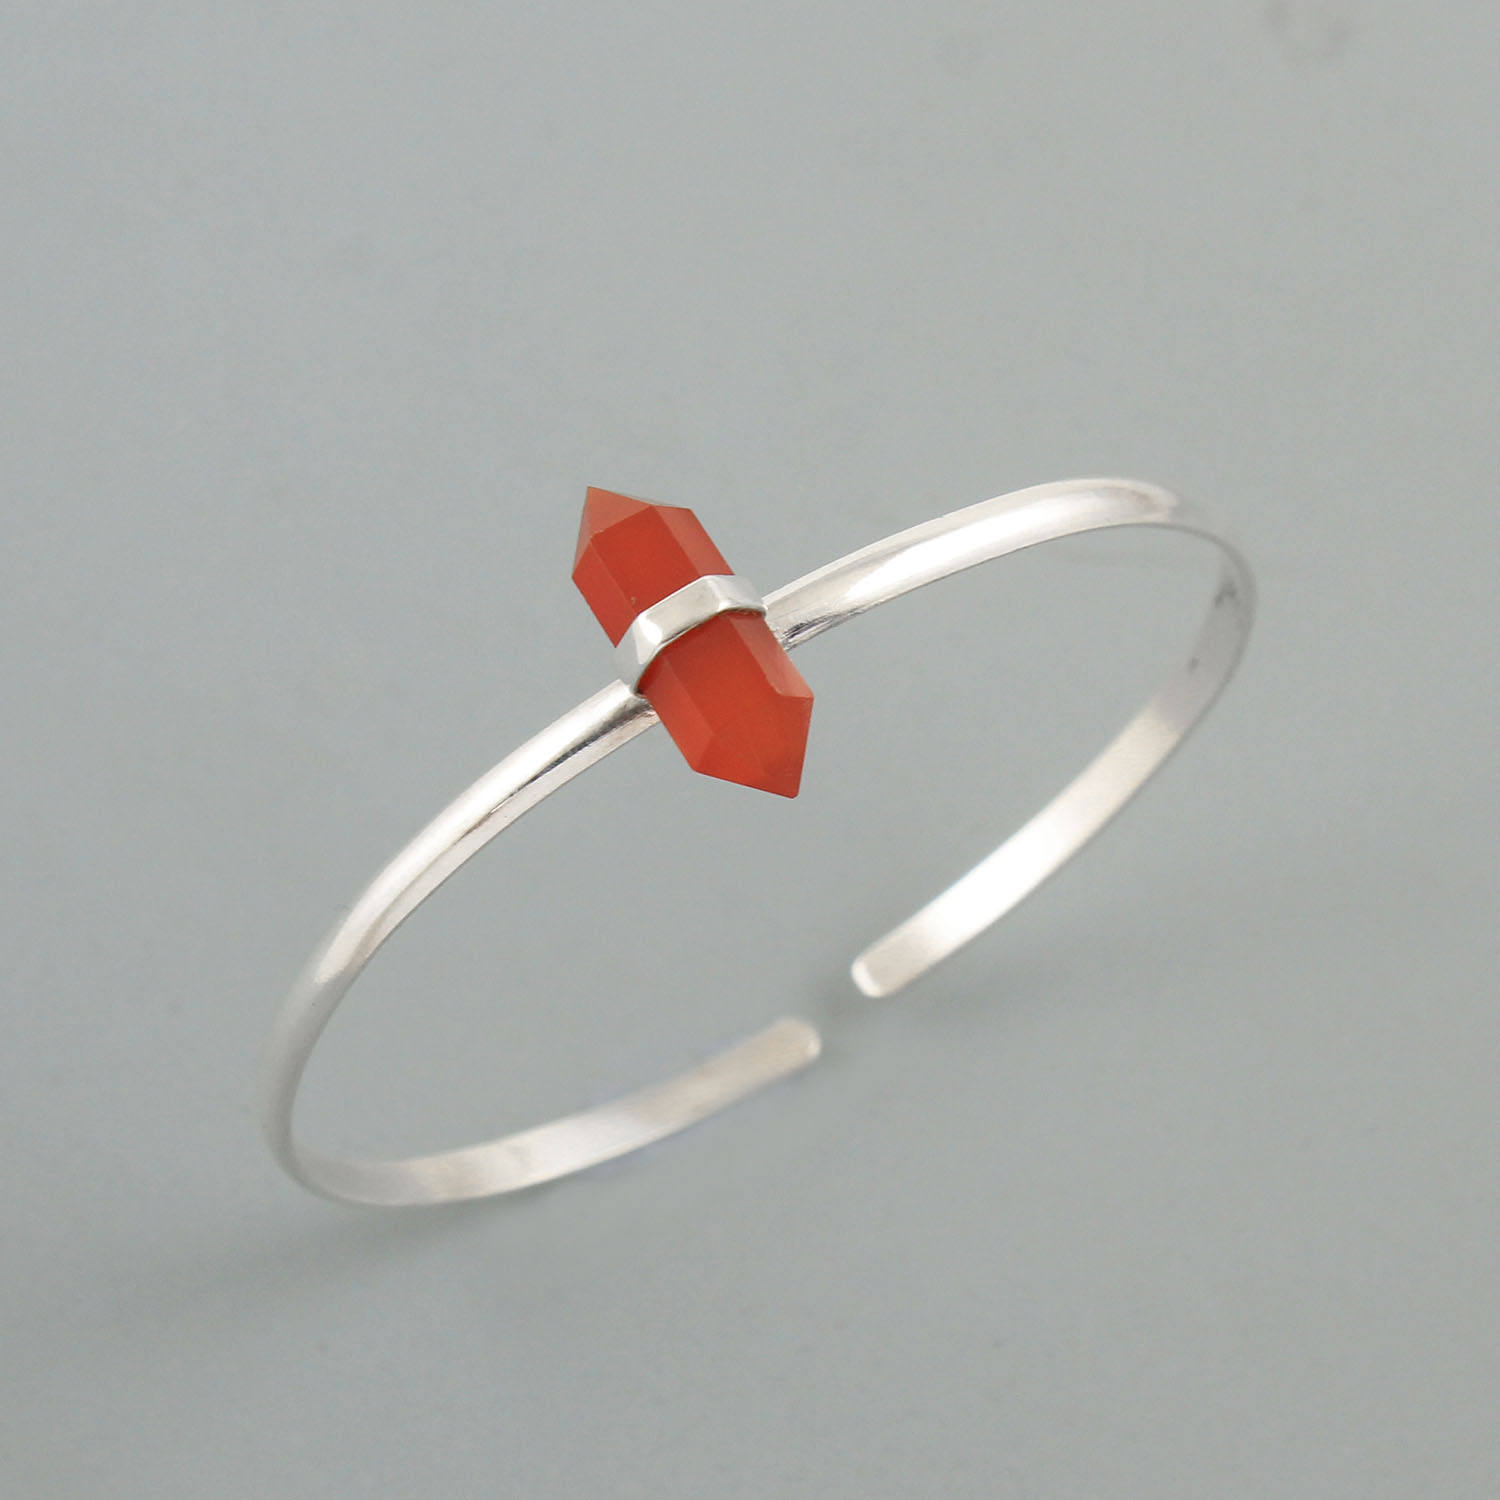 Pencil quartz red onyx gemstone 925 sterling silver cuff bangle wholesale silver jewelry